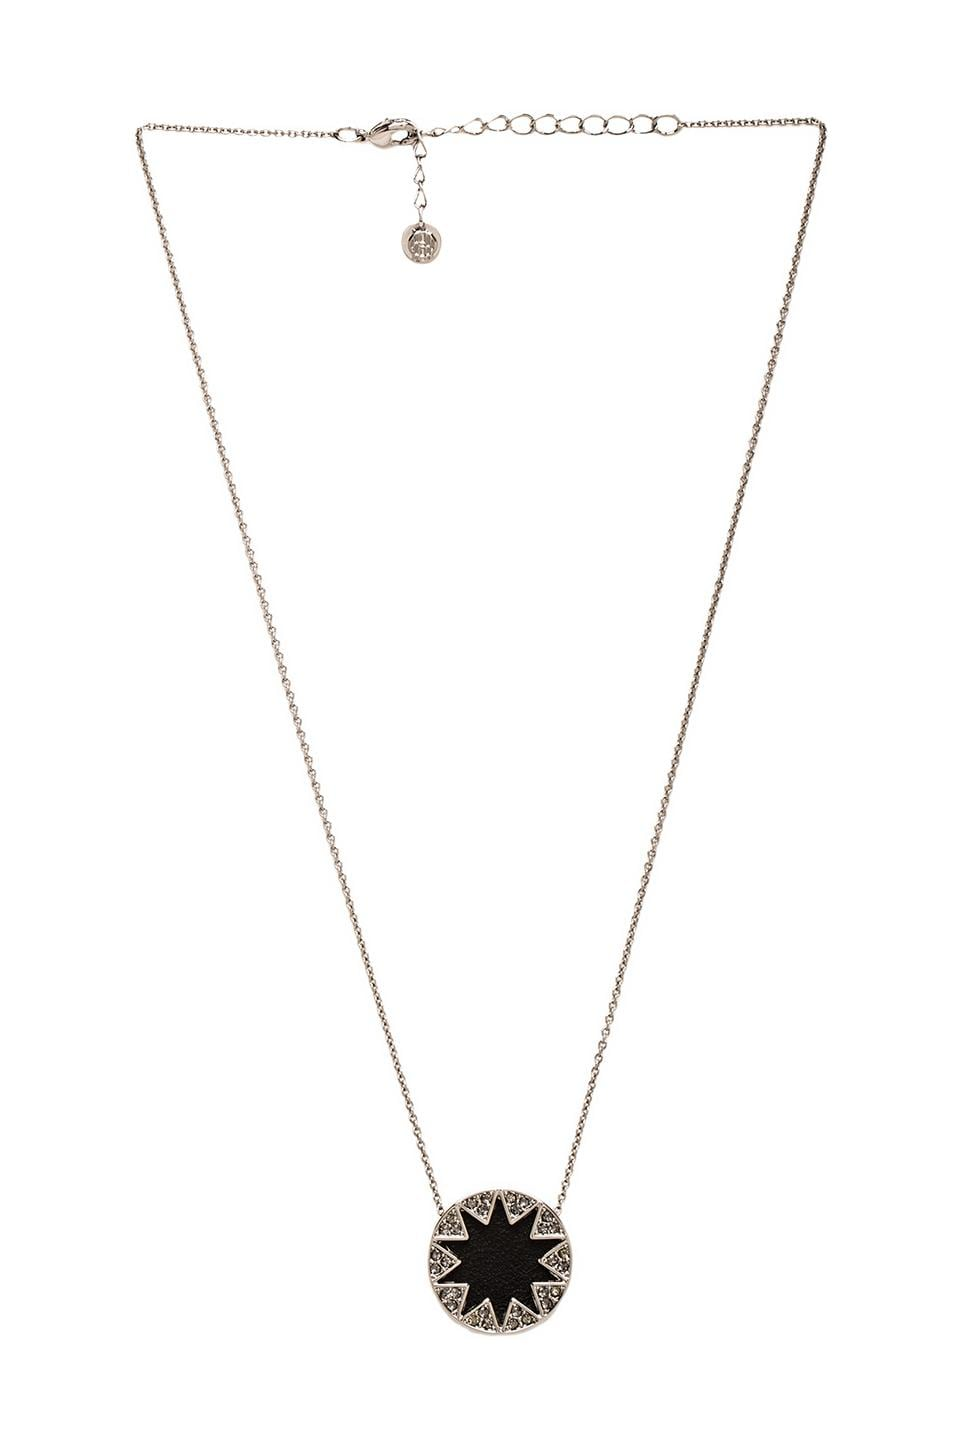 House of Harlow Mini Pave Sunburst Necklace in Gunmetal Tone Black